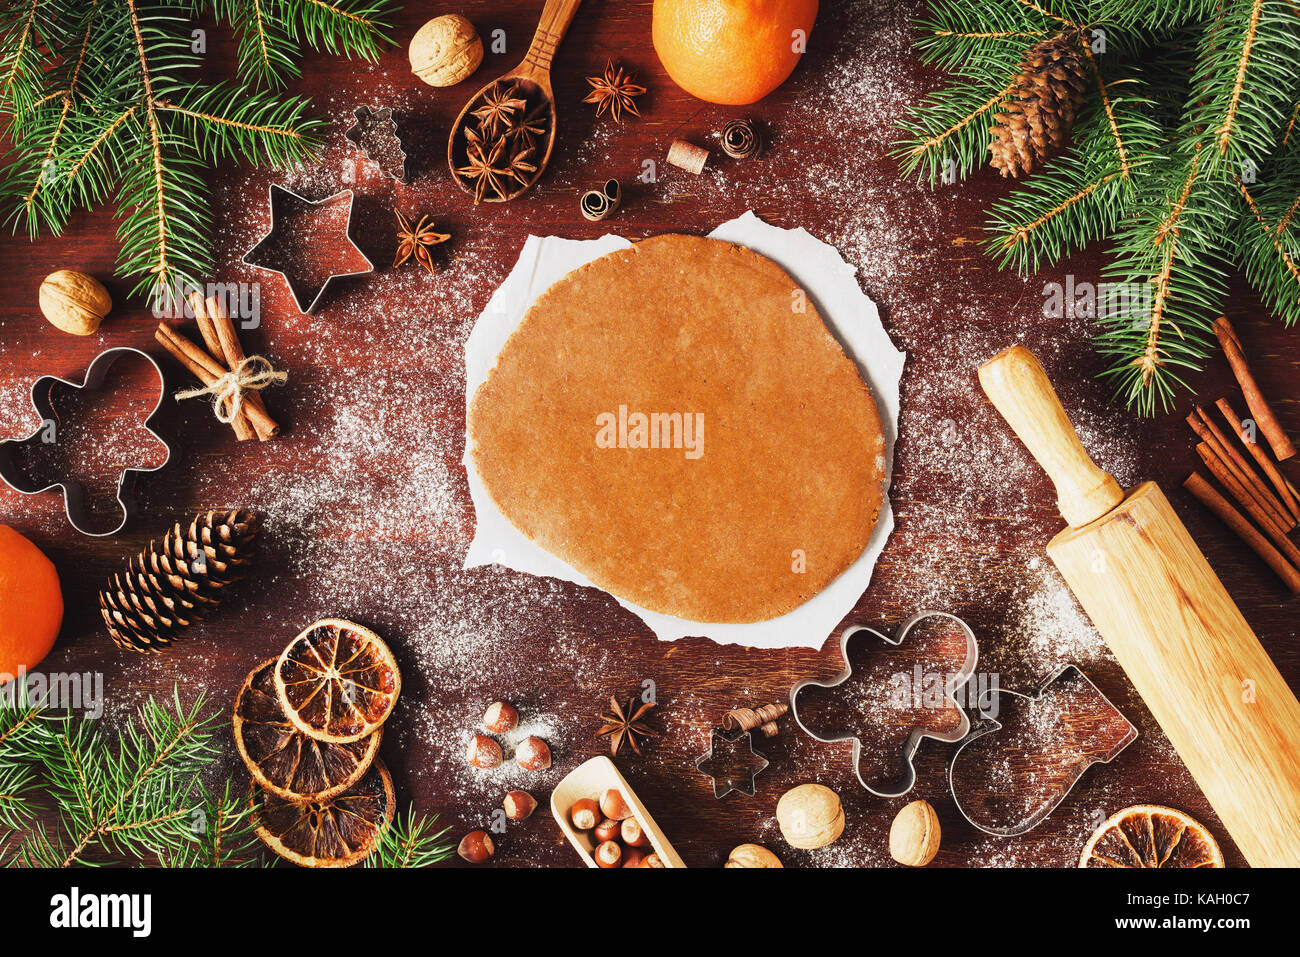 Gingerbread cookie dough rolled out on the table with Christmas and New Year decorations. Cookie cutters, fir tree, - Stock Image